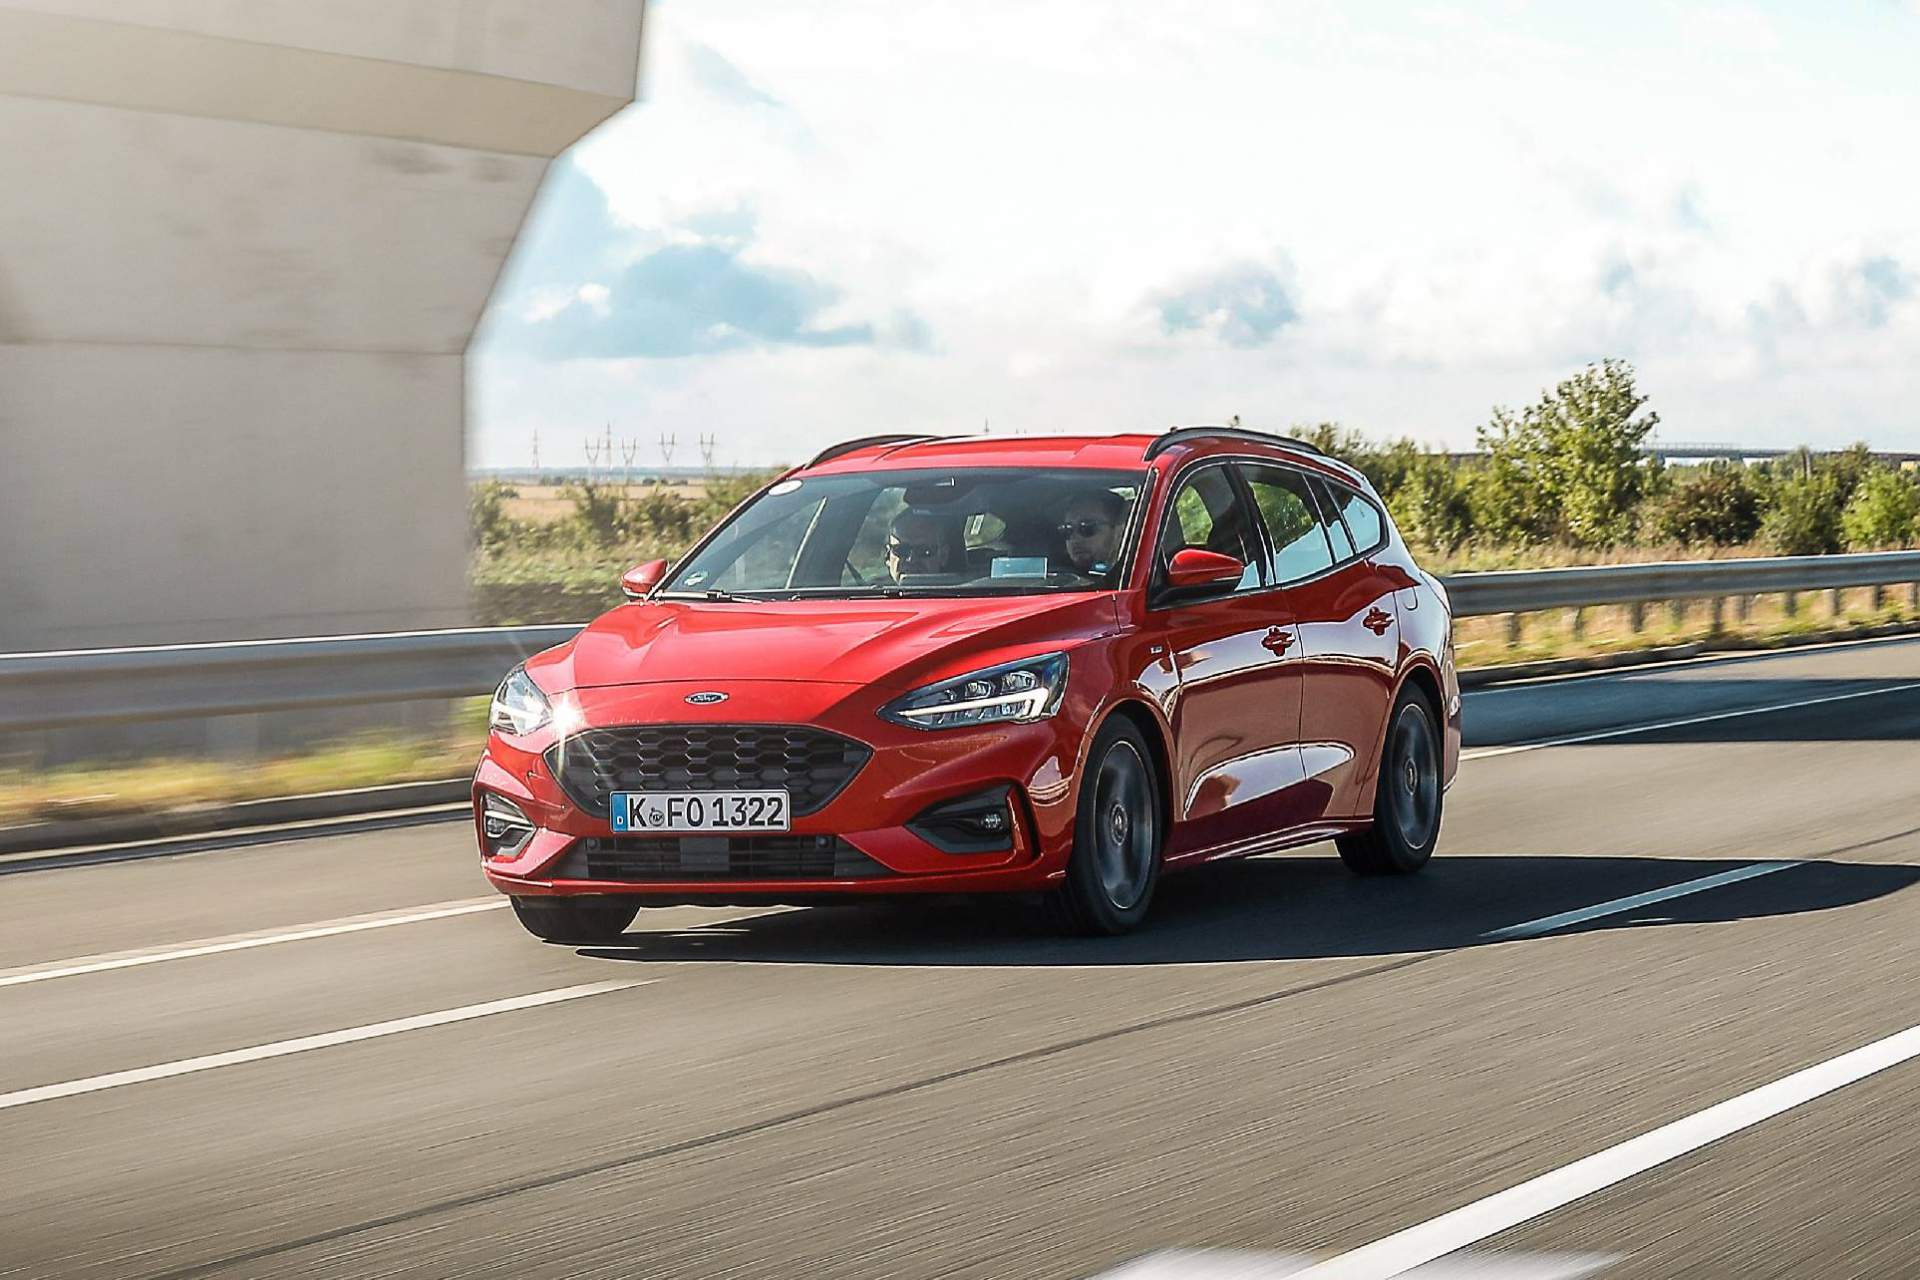 hight resolution of the new focus wagon with the manual transmission will do 0 100 km h 0 62 mph in 10 3 seconds and reach a top speed of 194 km h 121 mph